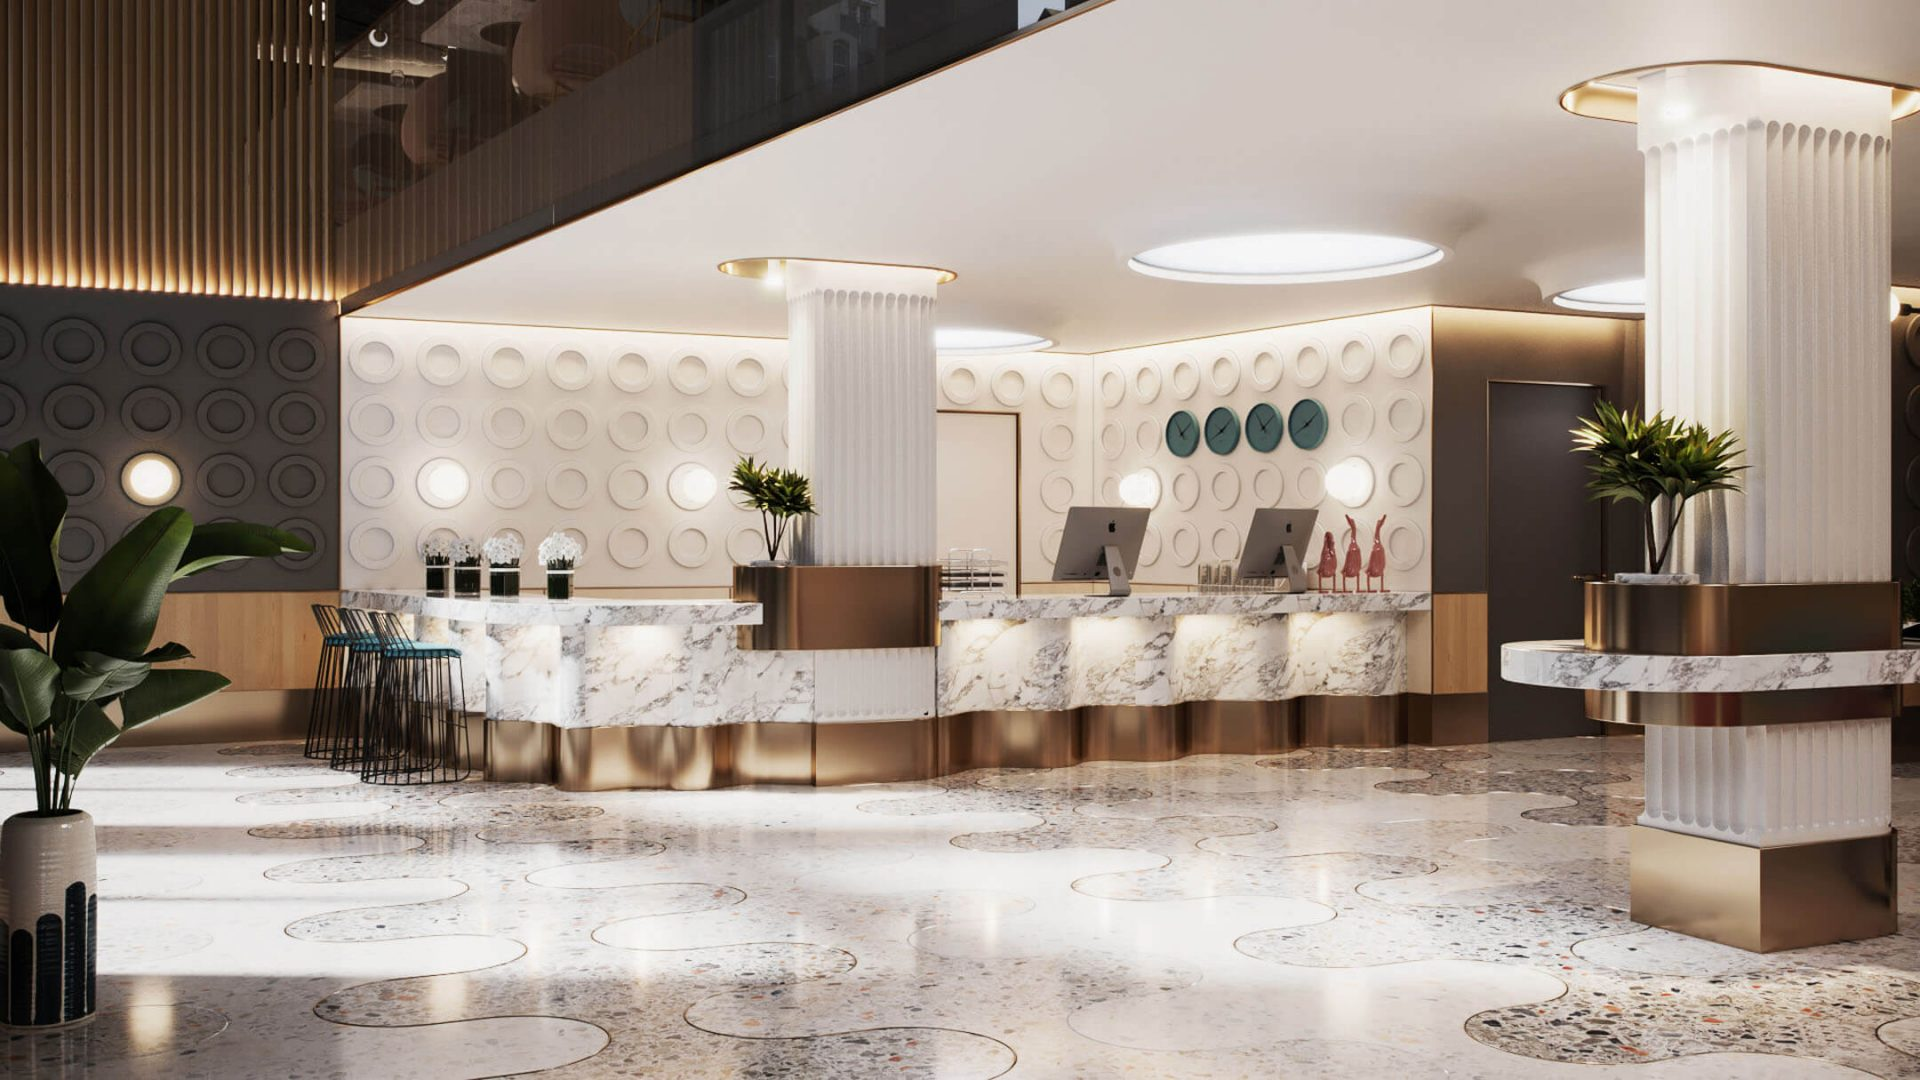 3D Interior Rendering of a Hotel Lobby